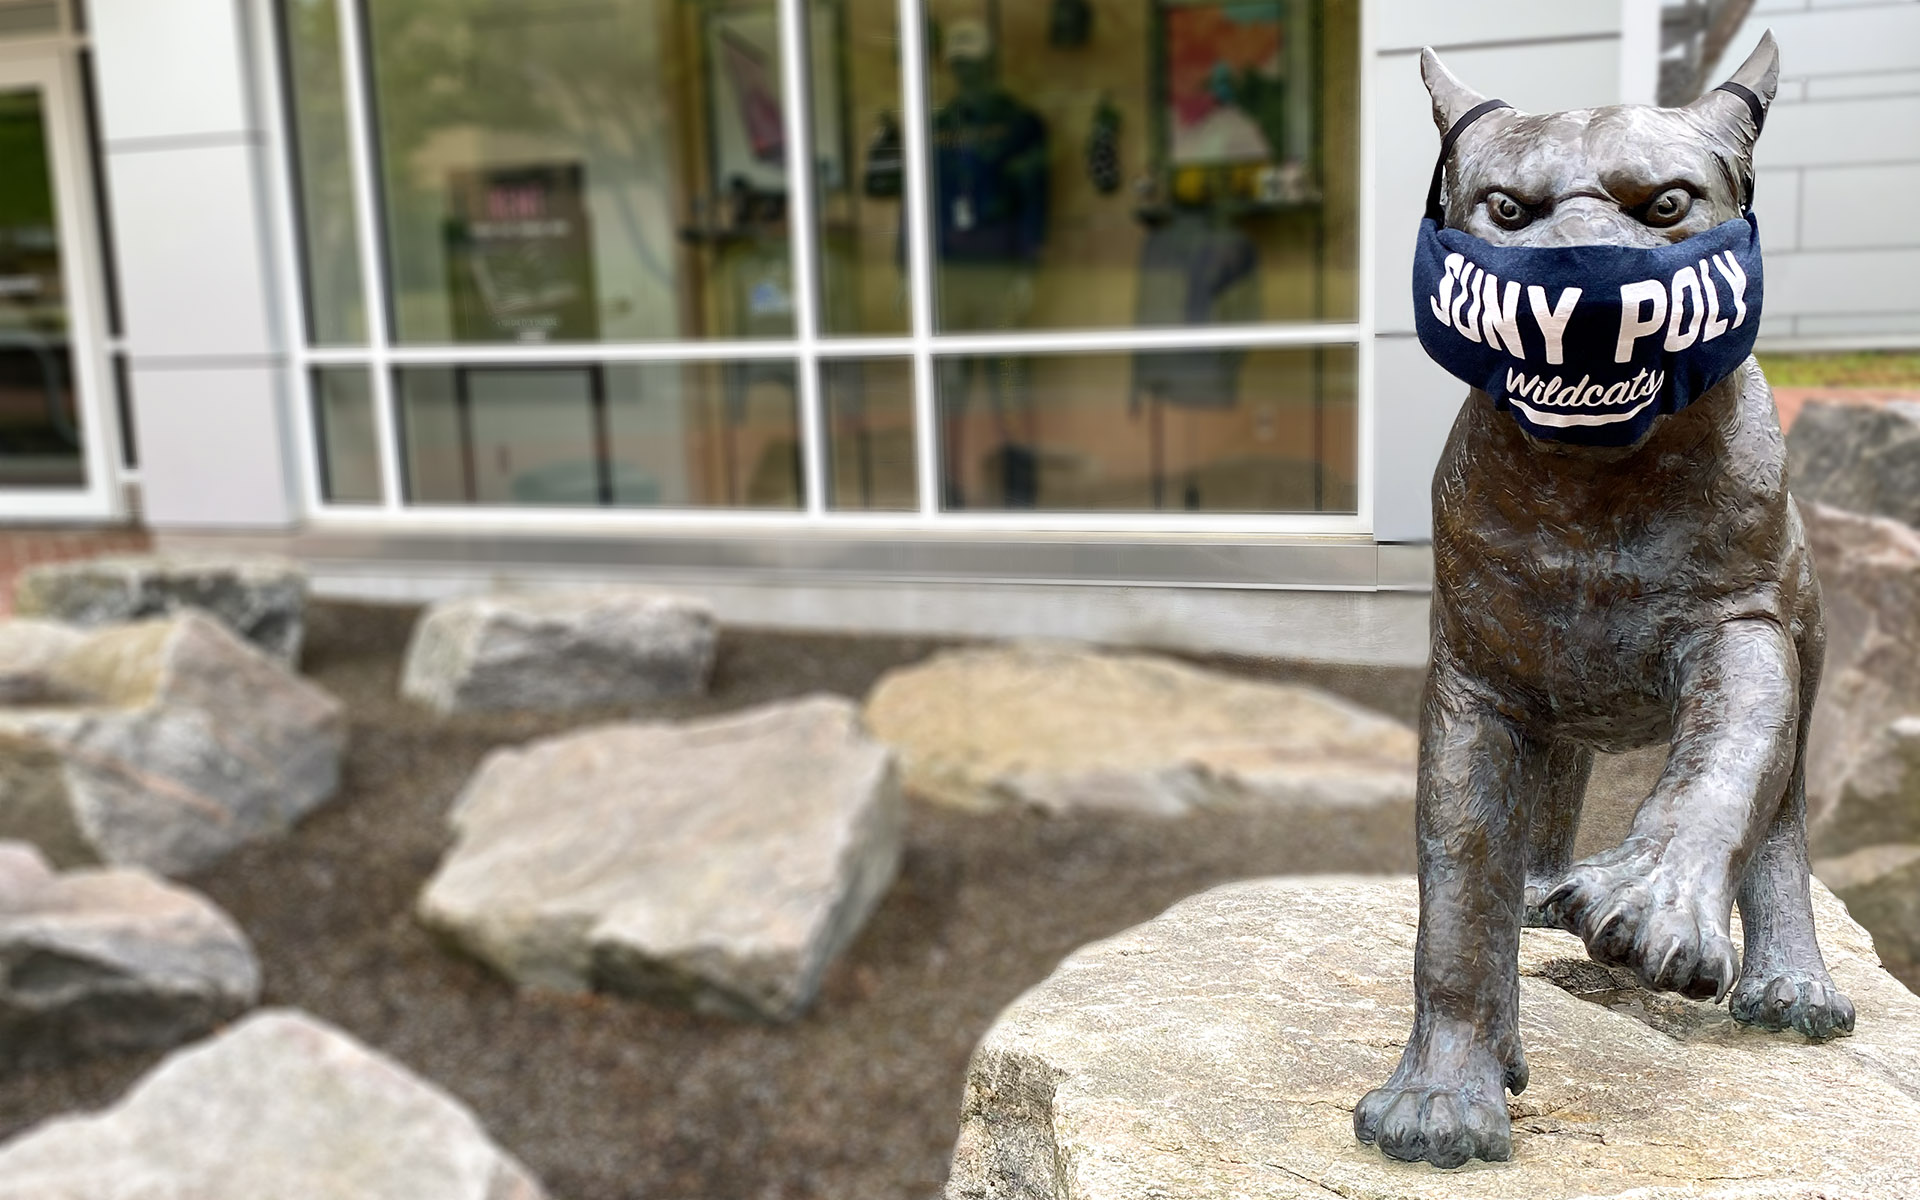 Wildcat statue with mask on face.